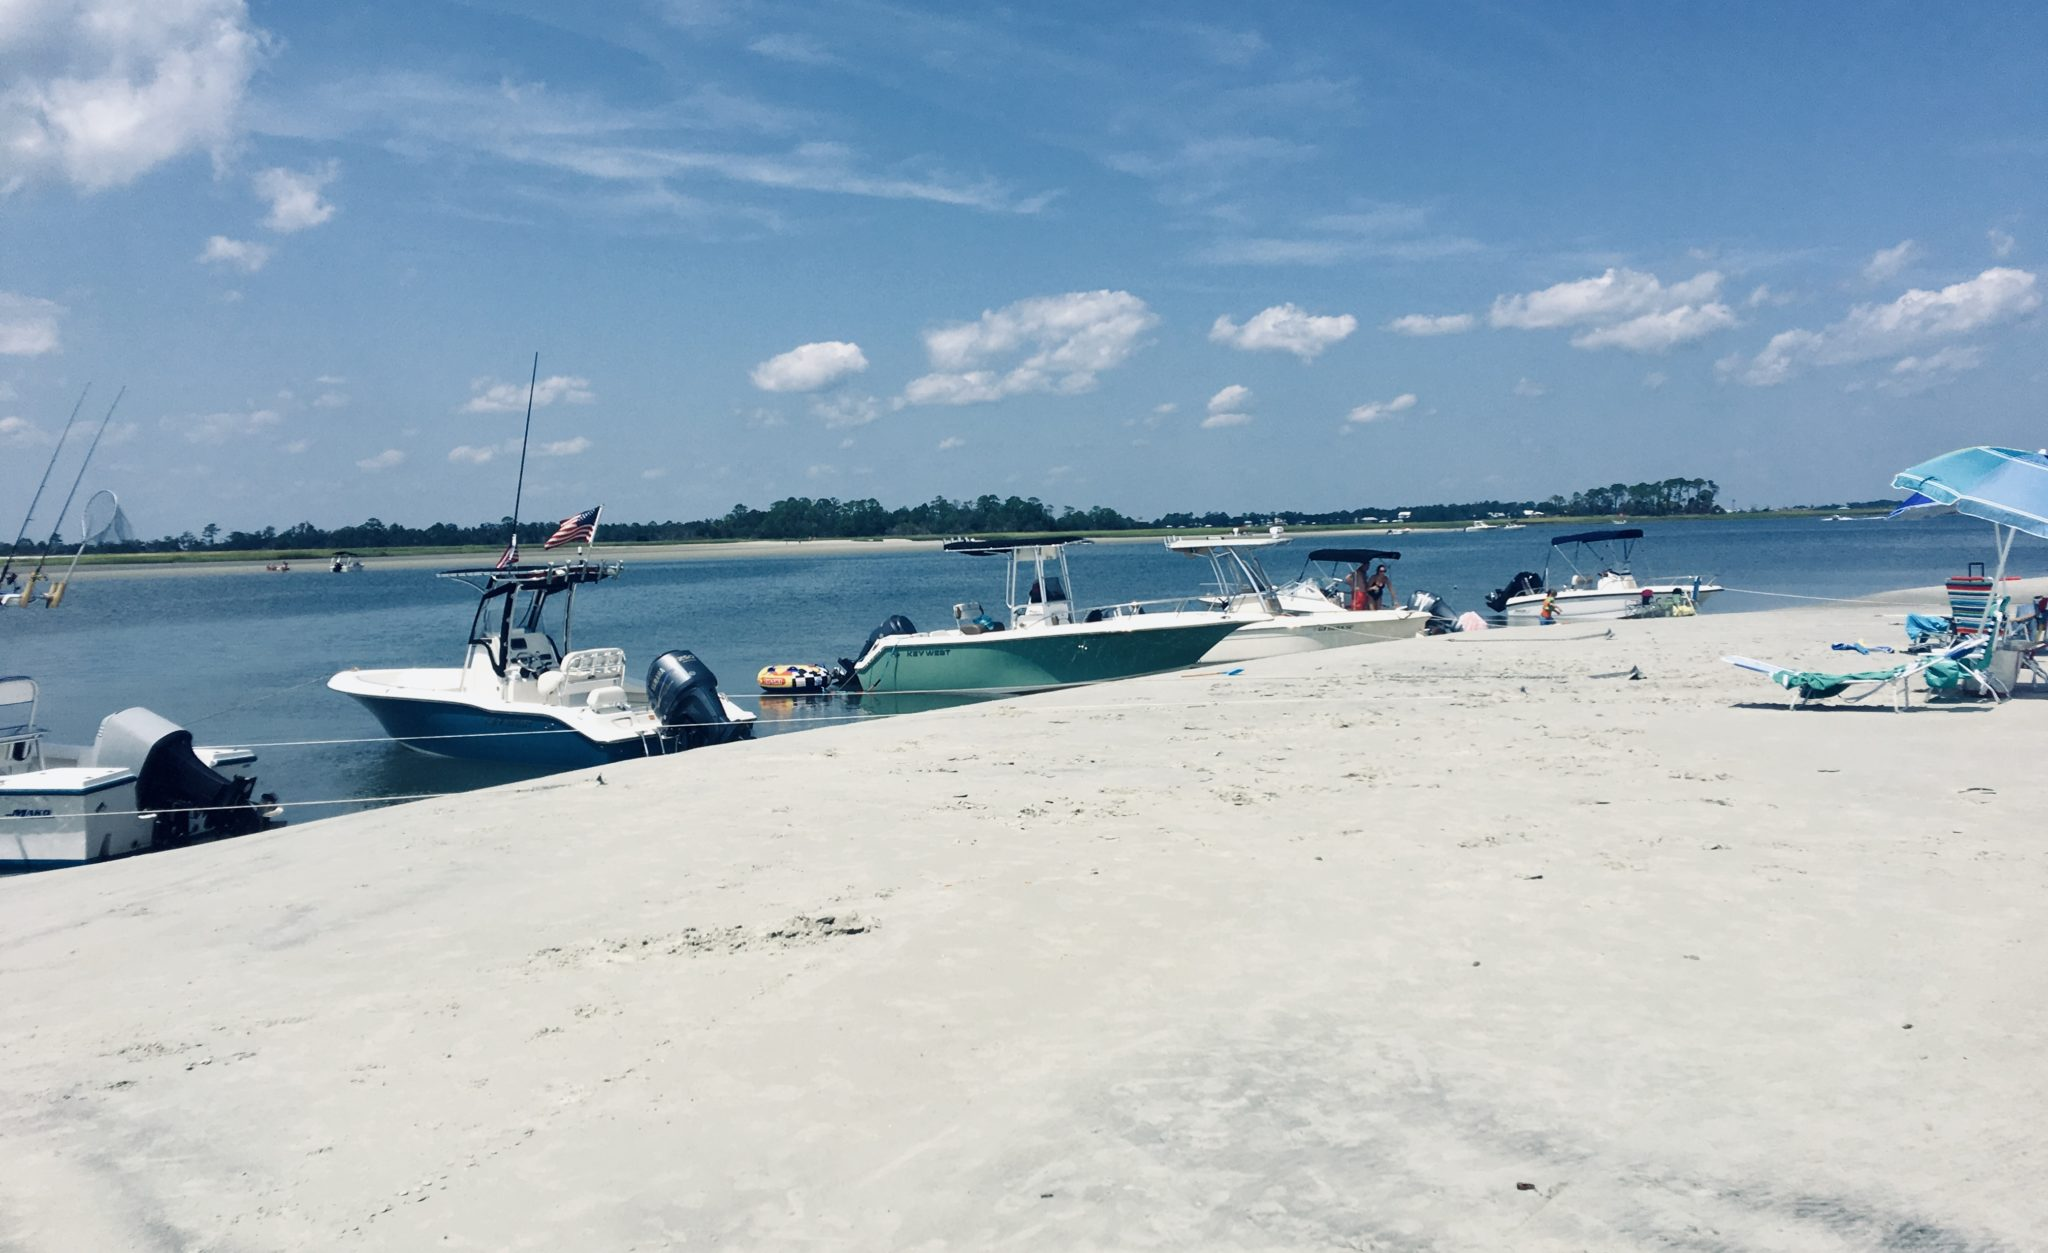 Boating at Tybee Island